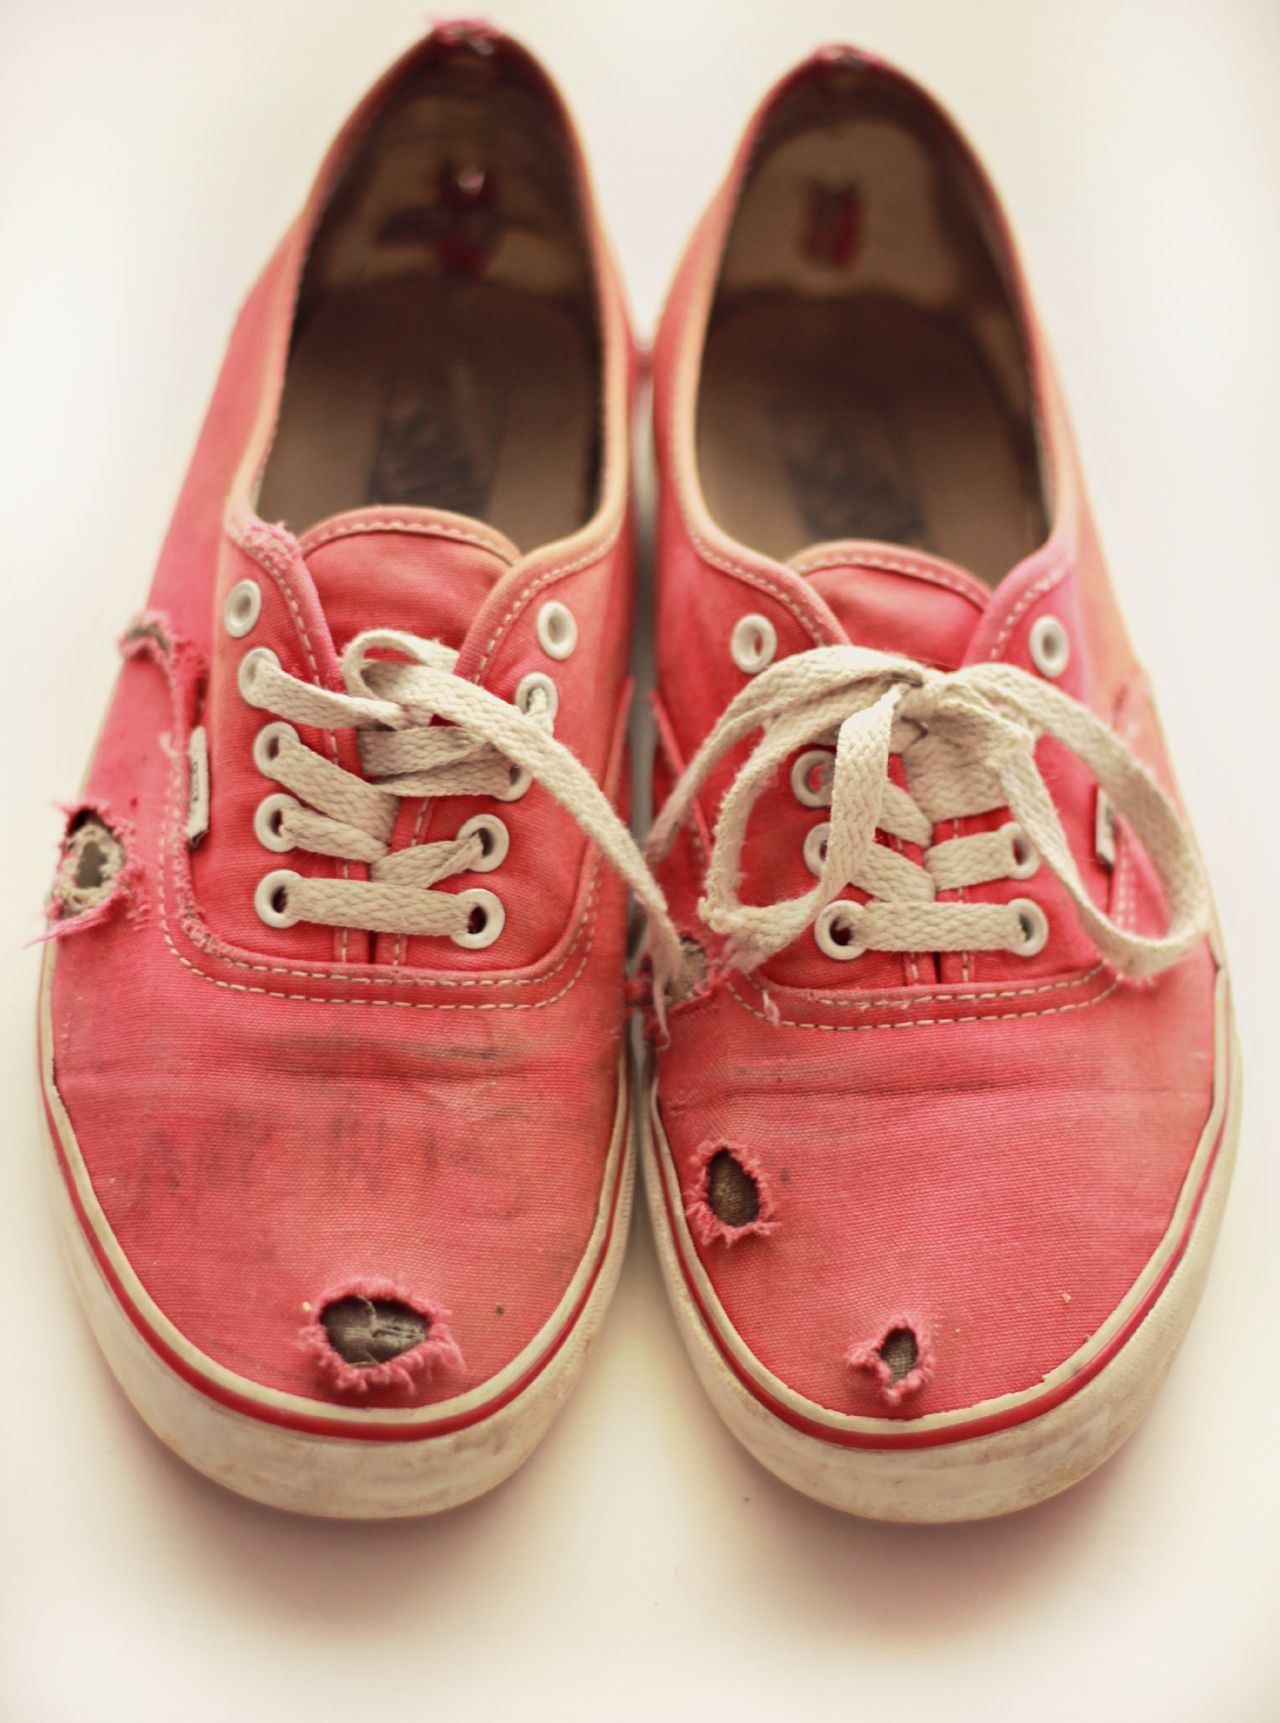 Vans shoes Clothes Casual Outift for • teens • movies • girls • women •.  summer • fall • spring • winter • outfit ideas • dates • school • parties a0b3505fb